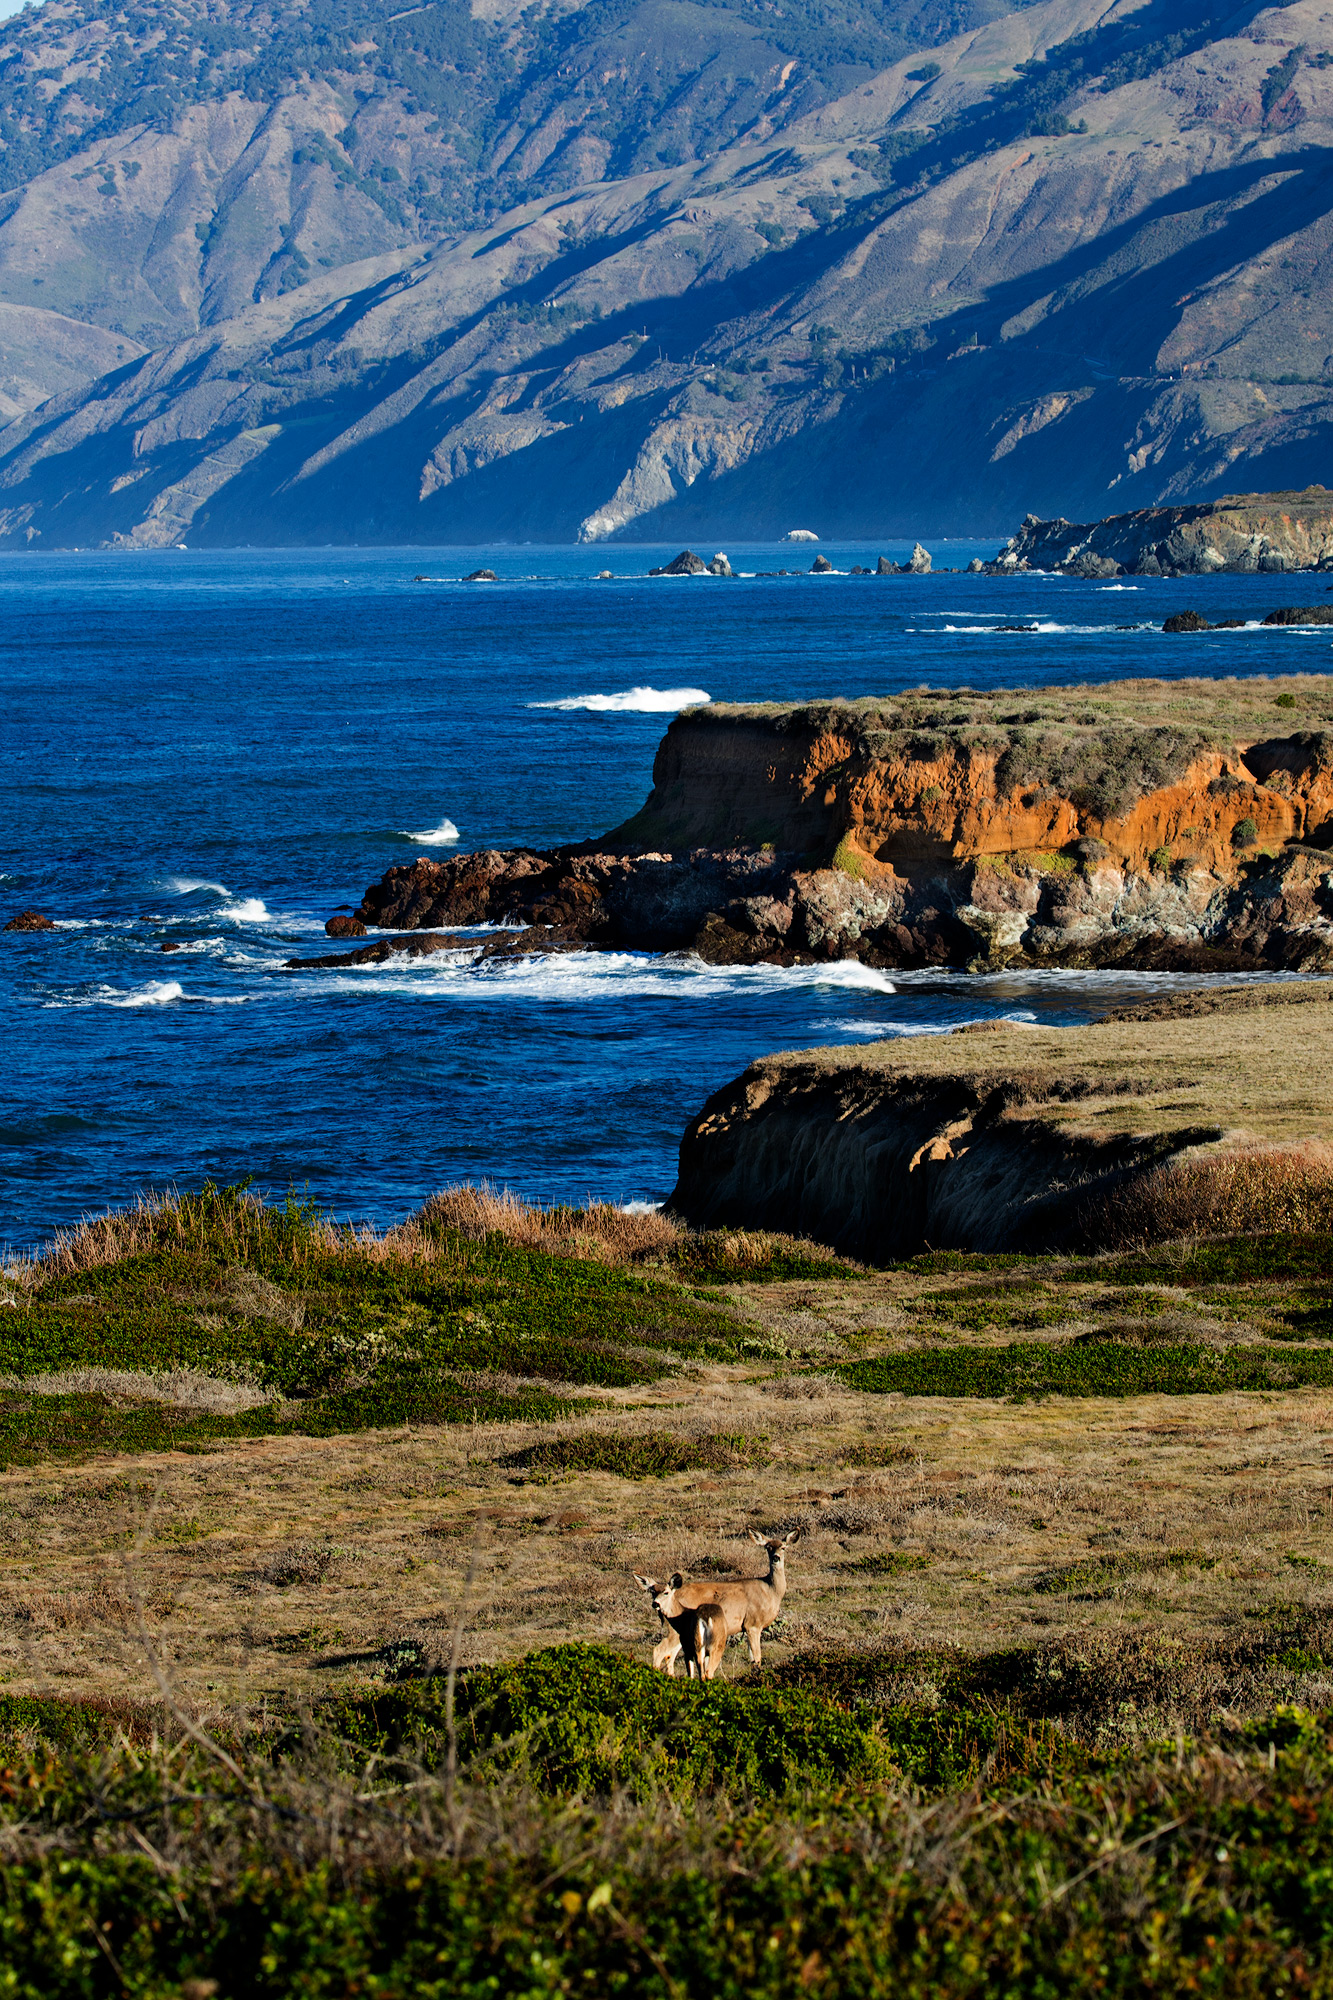 Deer feed on the coastal grasses in the early morning along the Pacific Coast Highway.